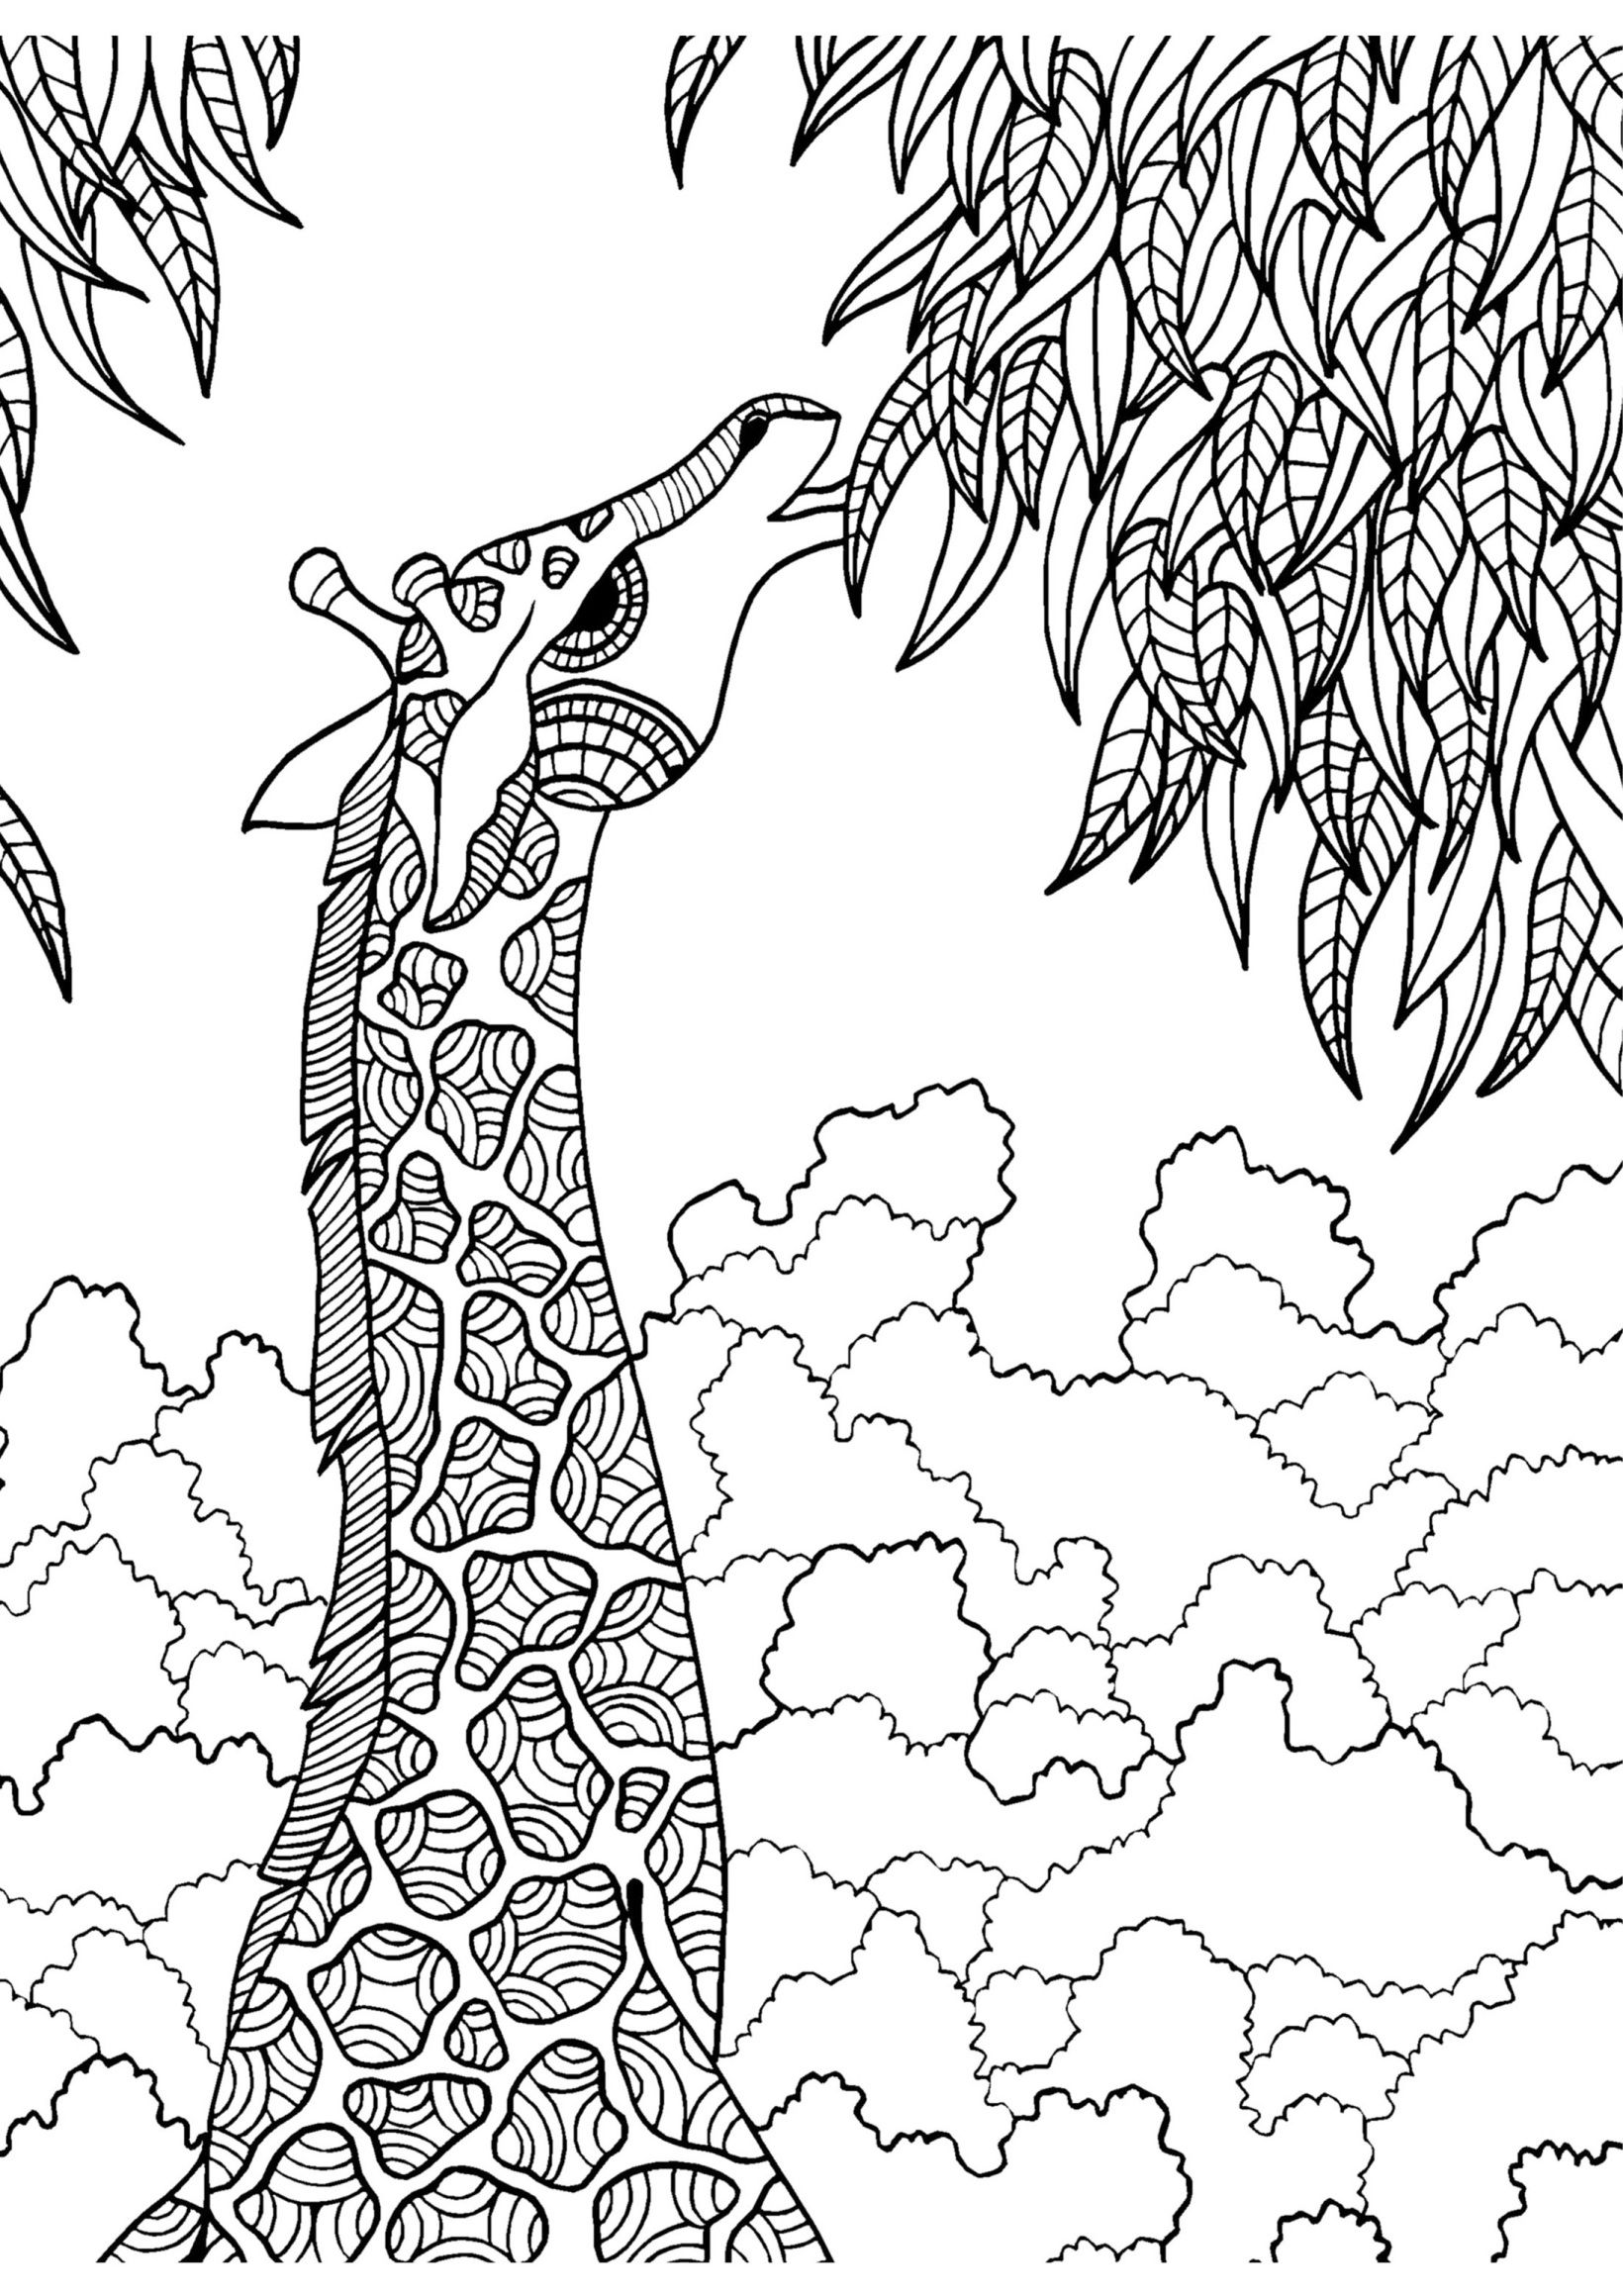 Giraffe adult colouring page Colouring In Sheets Art